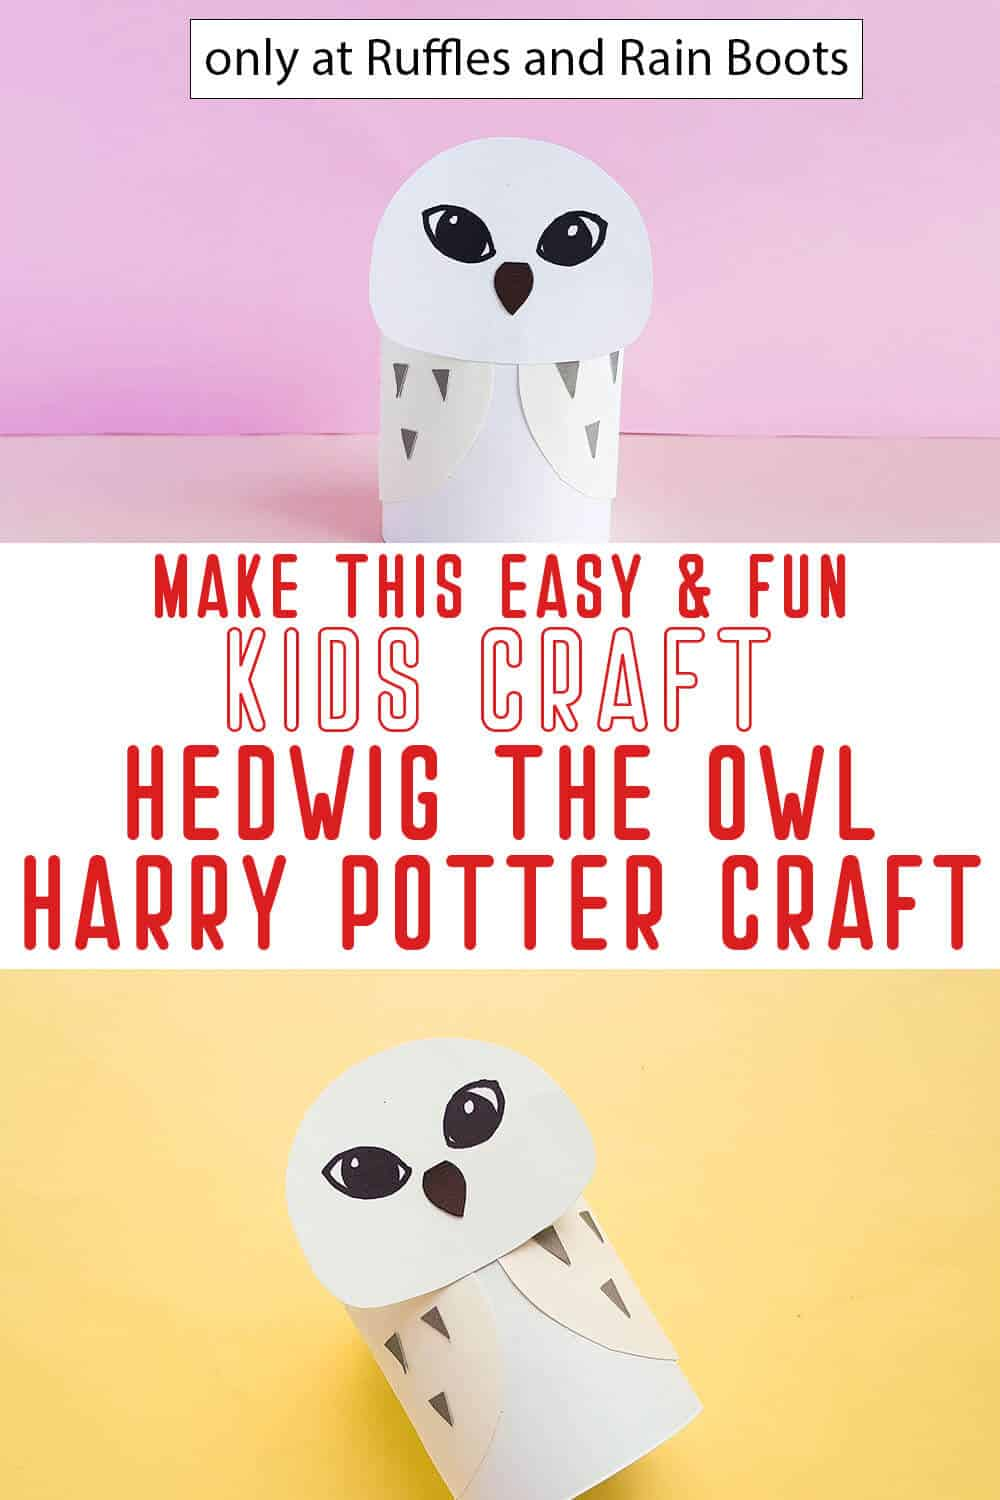 photo collage of hedwig owl paper craft harry potter craft with text which reads make this easy & fun kids craft hedwig the owl harry potter craft